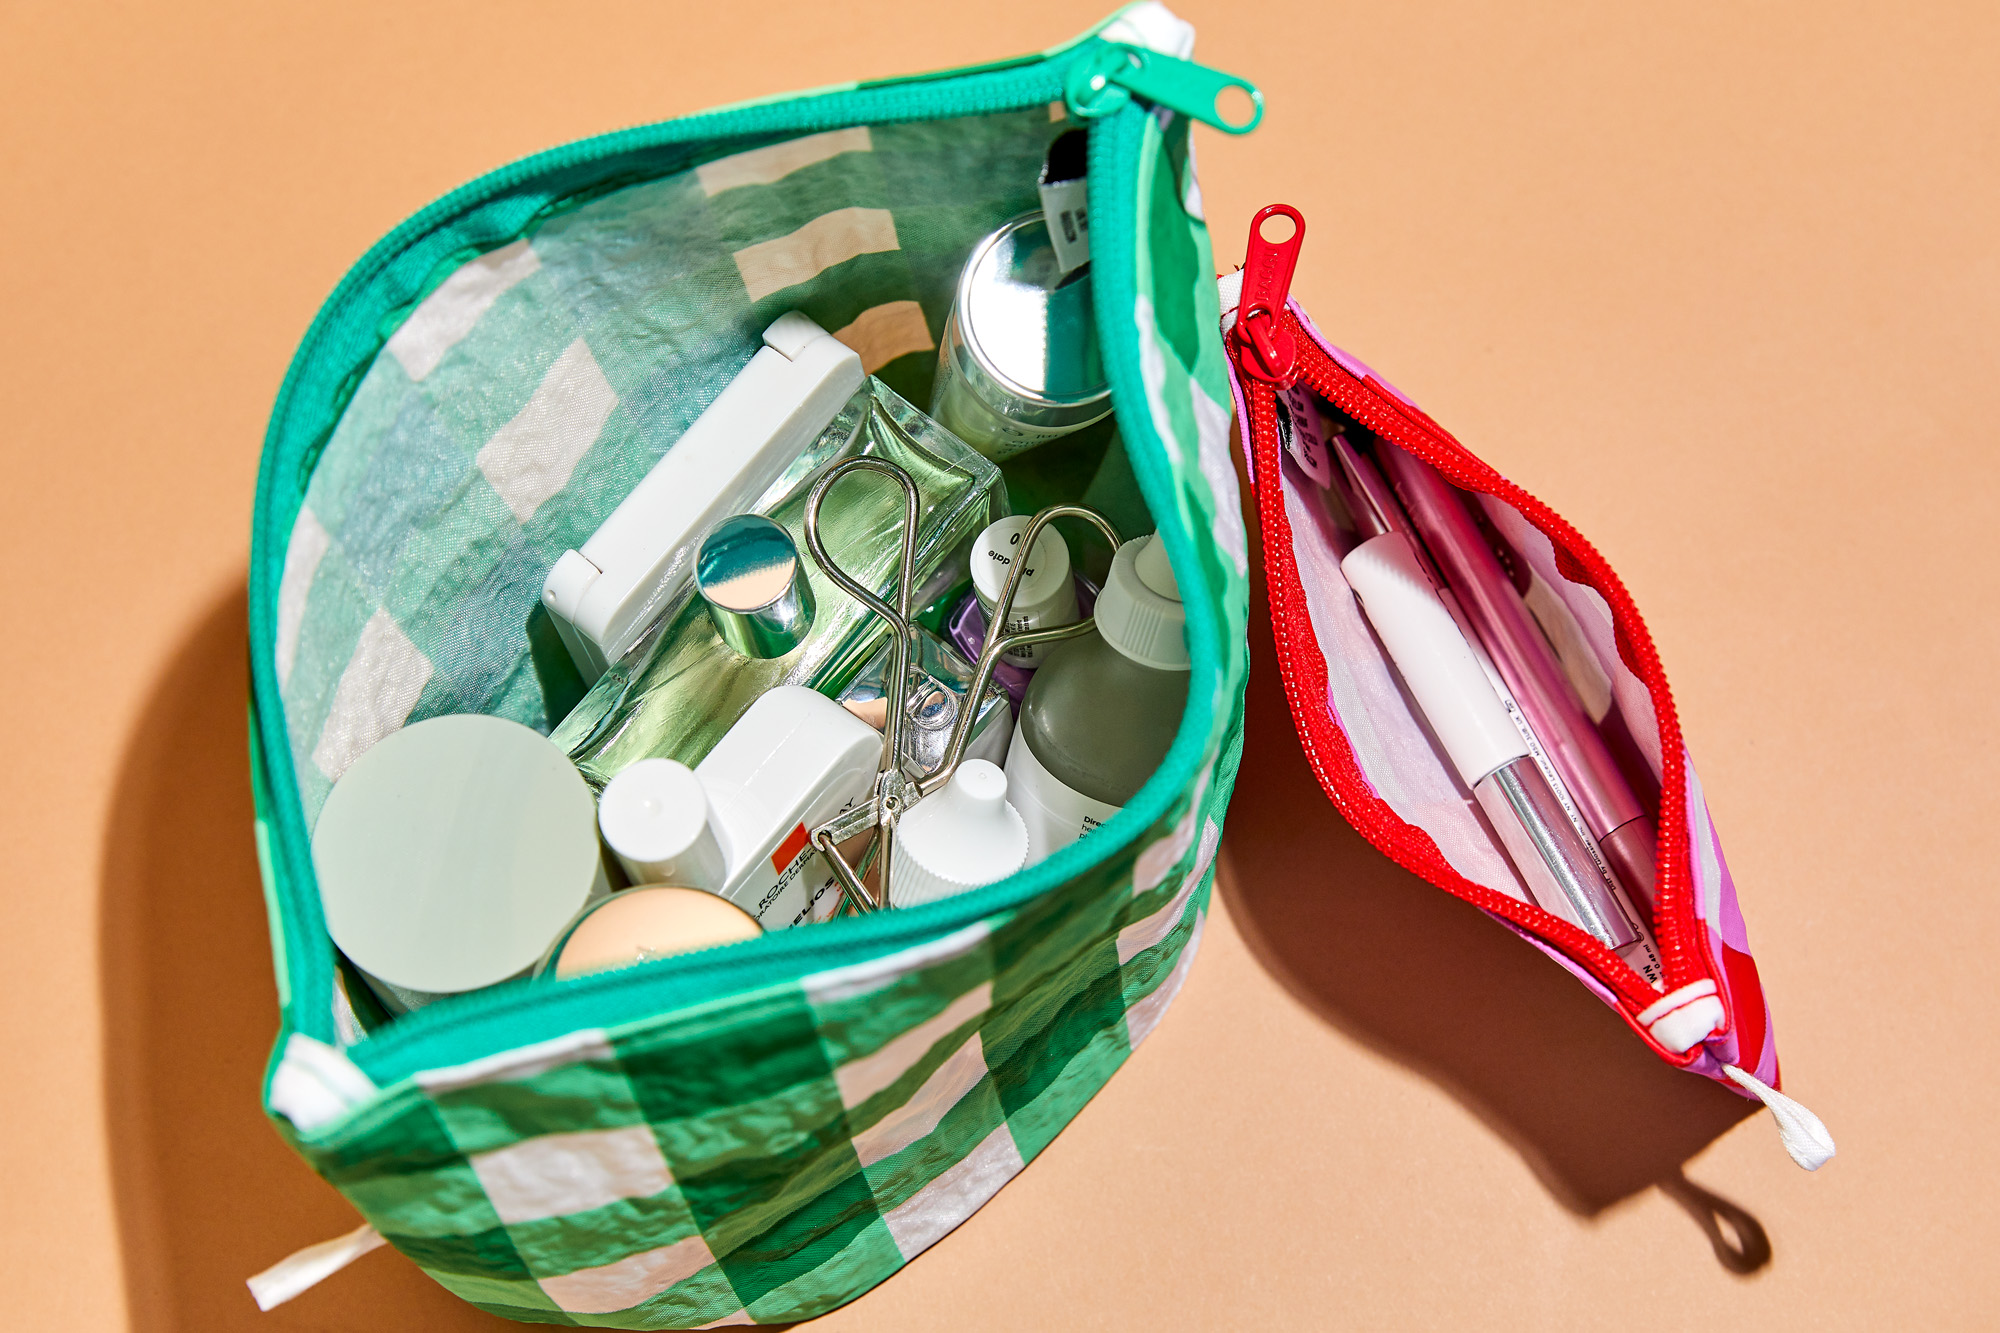 Must Have Beauty Essentials To Pack For Your Honeymoon